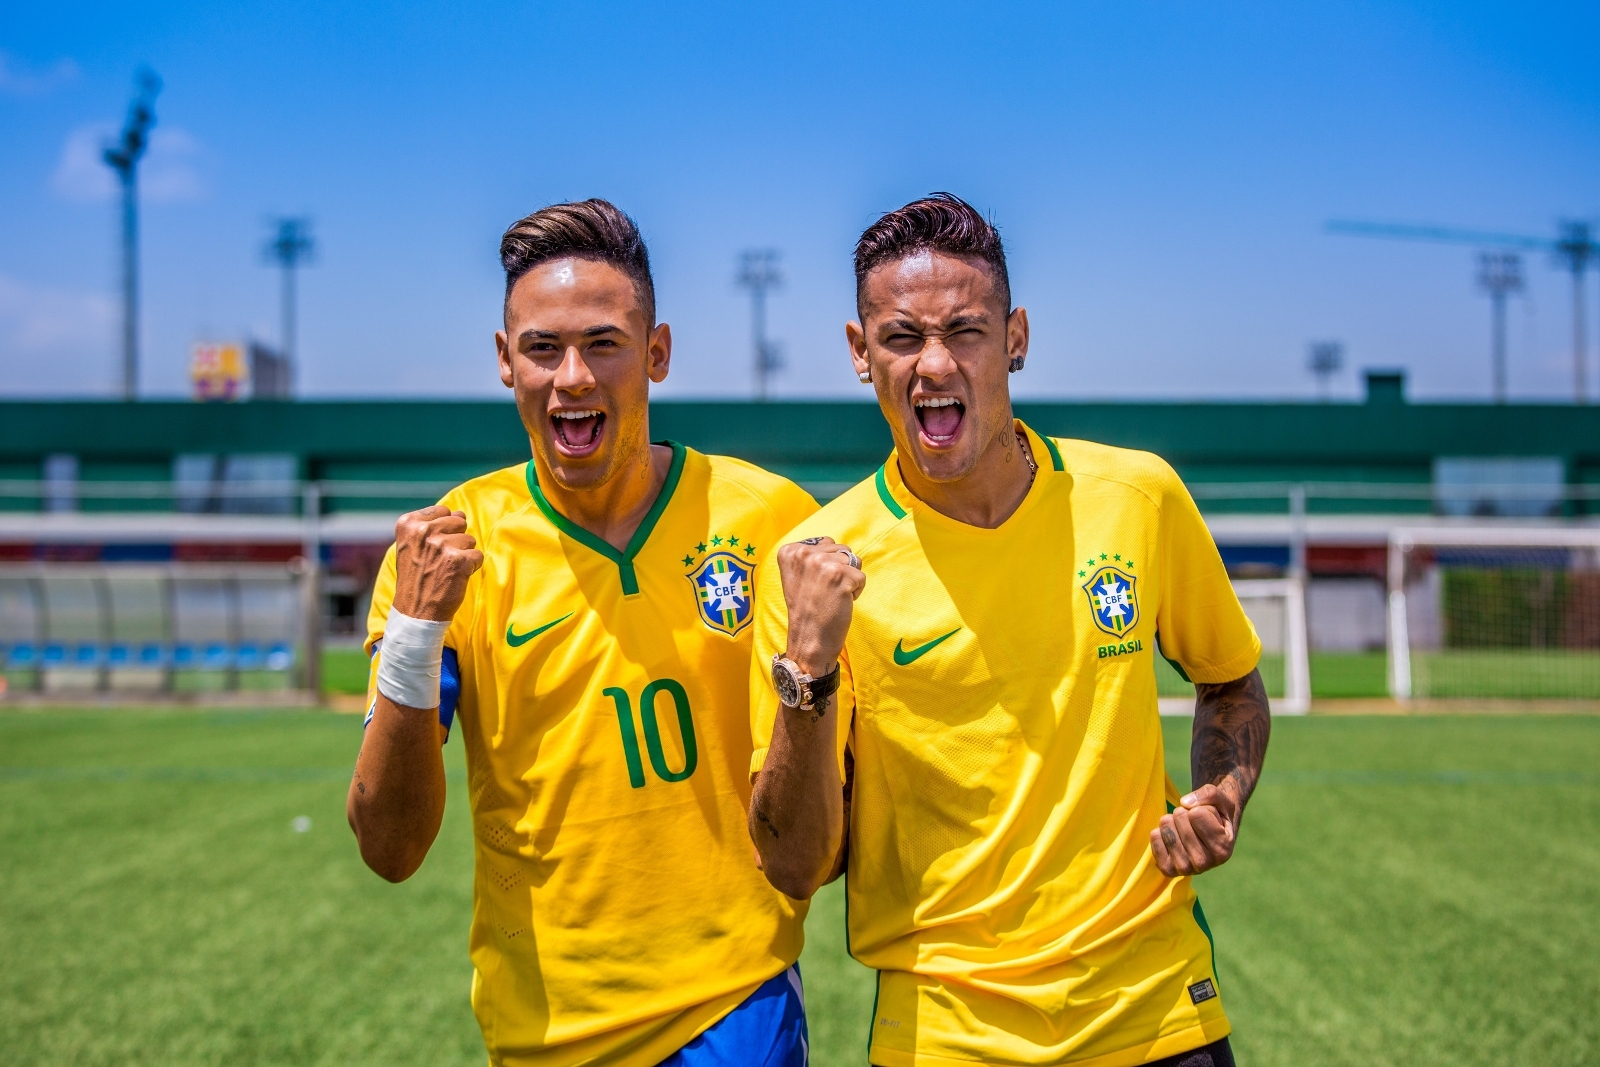 Madame Tussauds Orlando Unveils New Photo Technology Experience in Neymar Exhibit